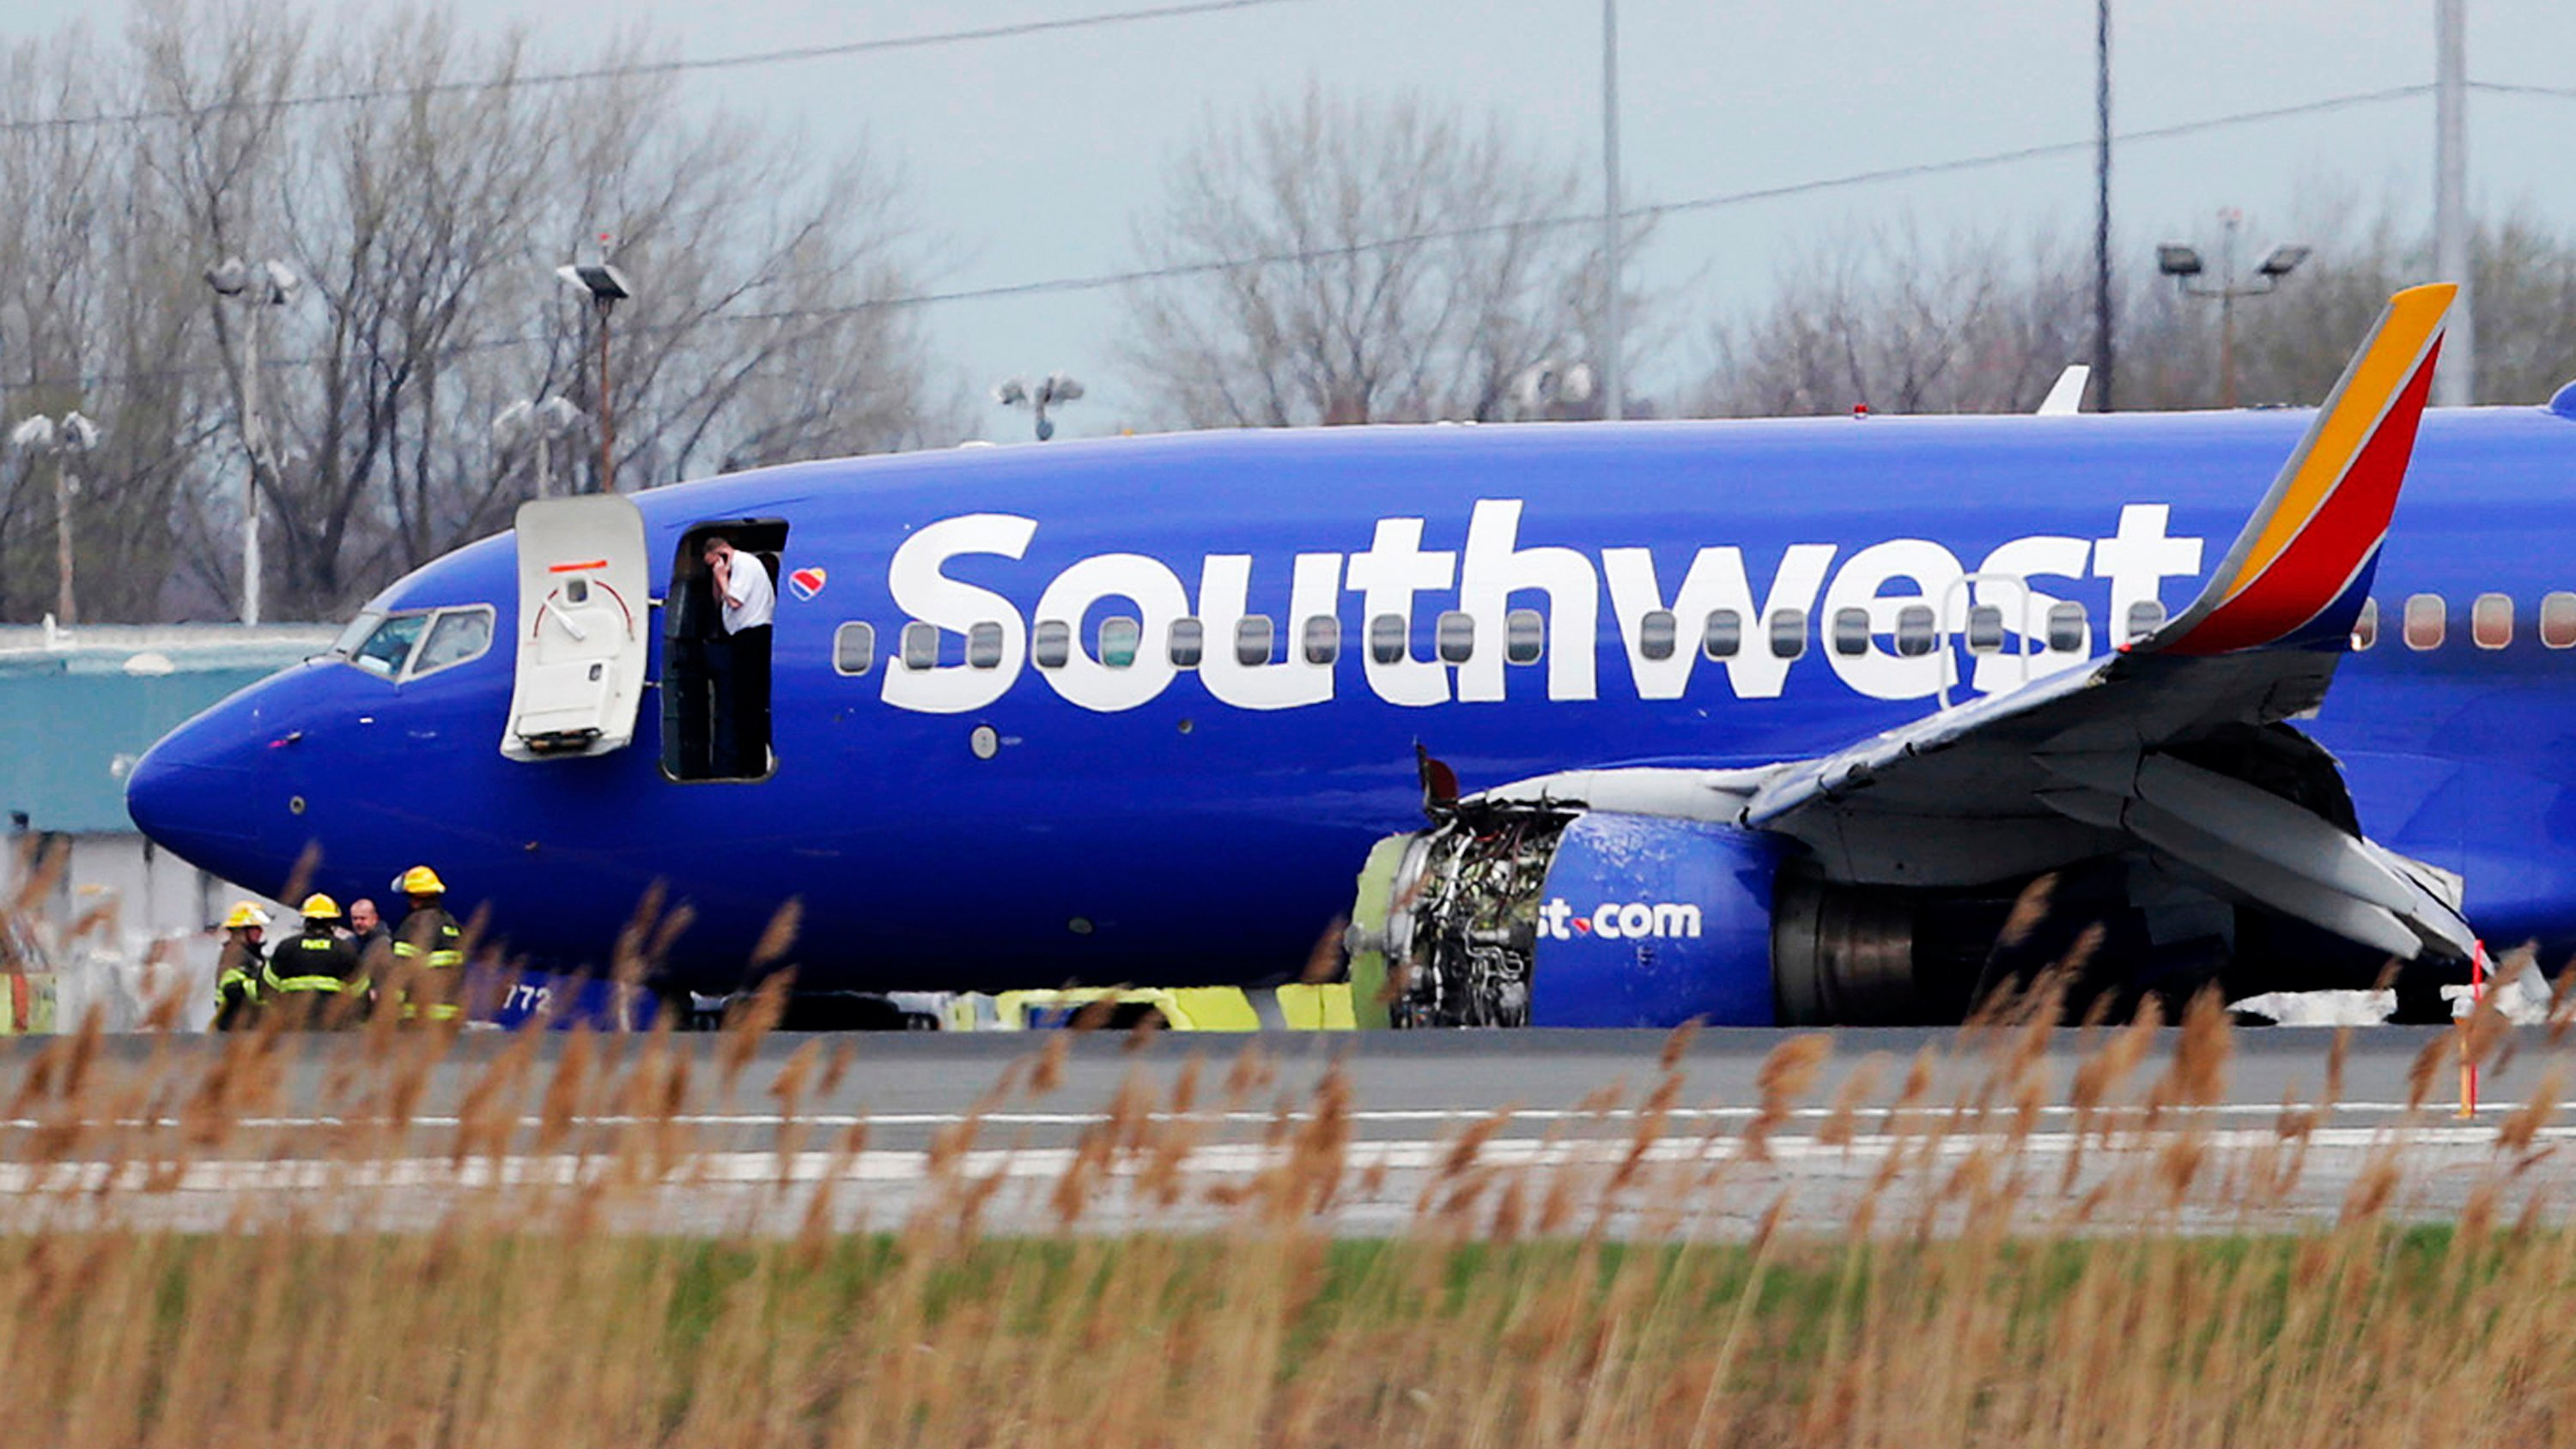 Southwest opposed engine maker on stepped-up FAA inspections